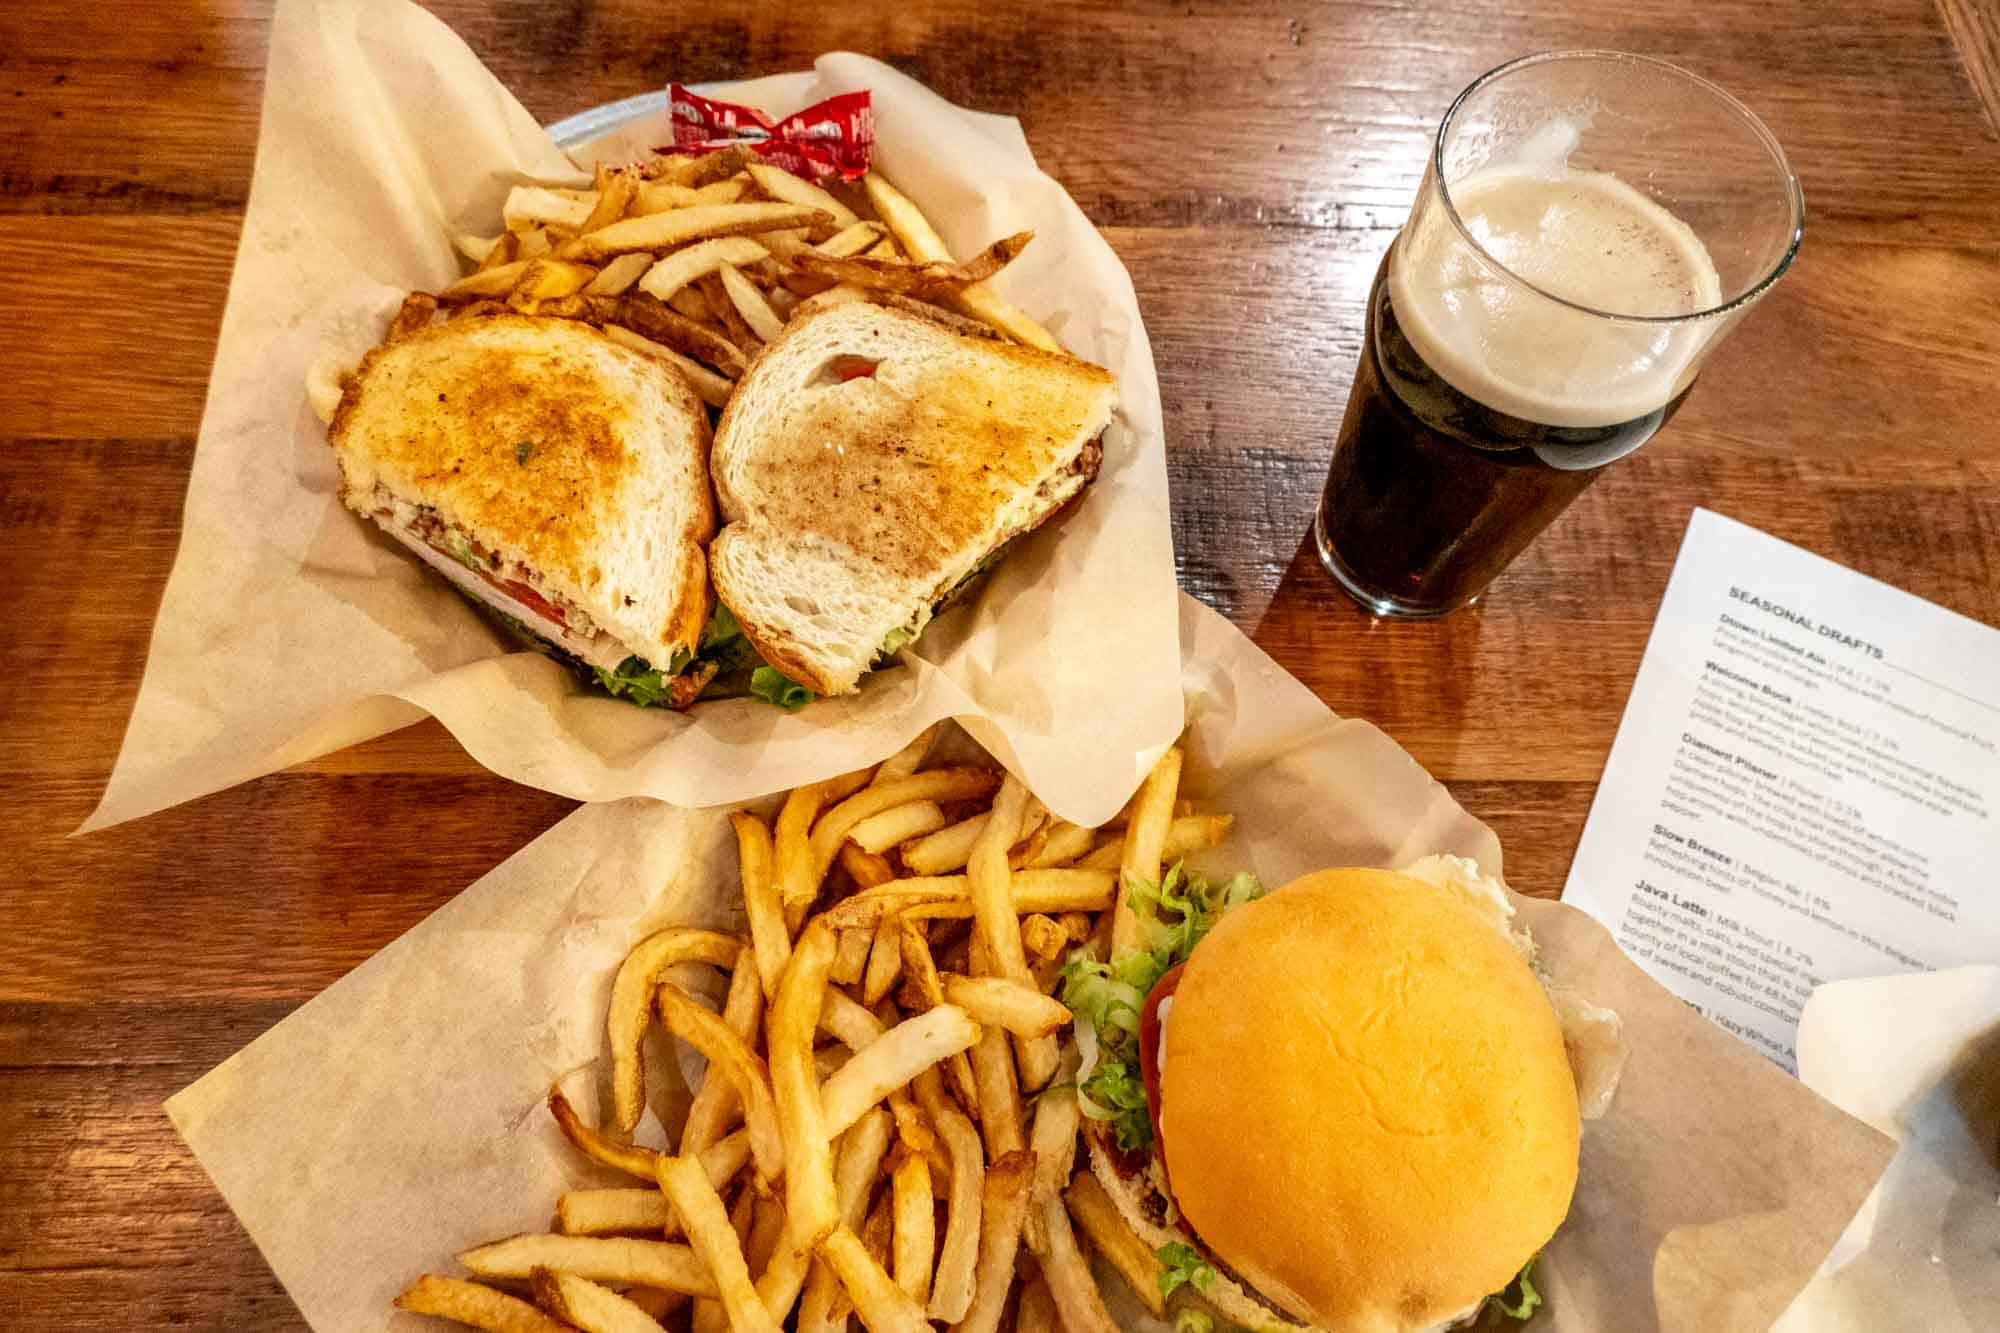 Two sandwiches with french fries and a beer on a table